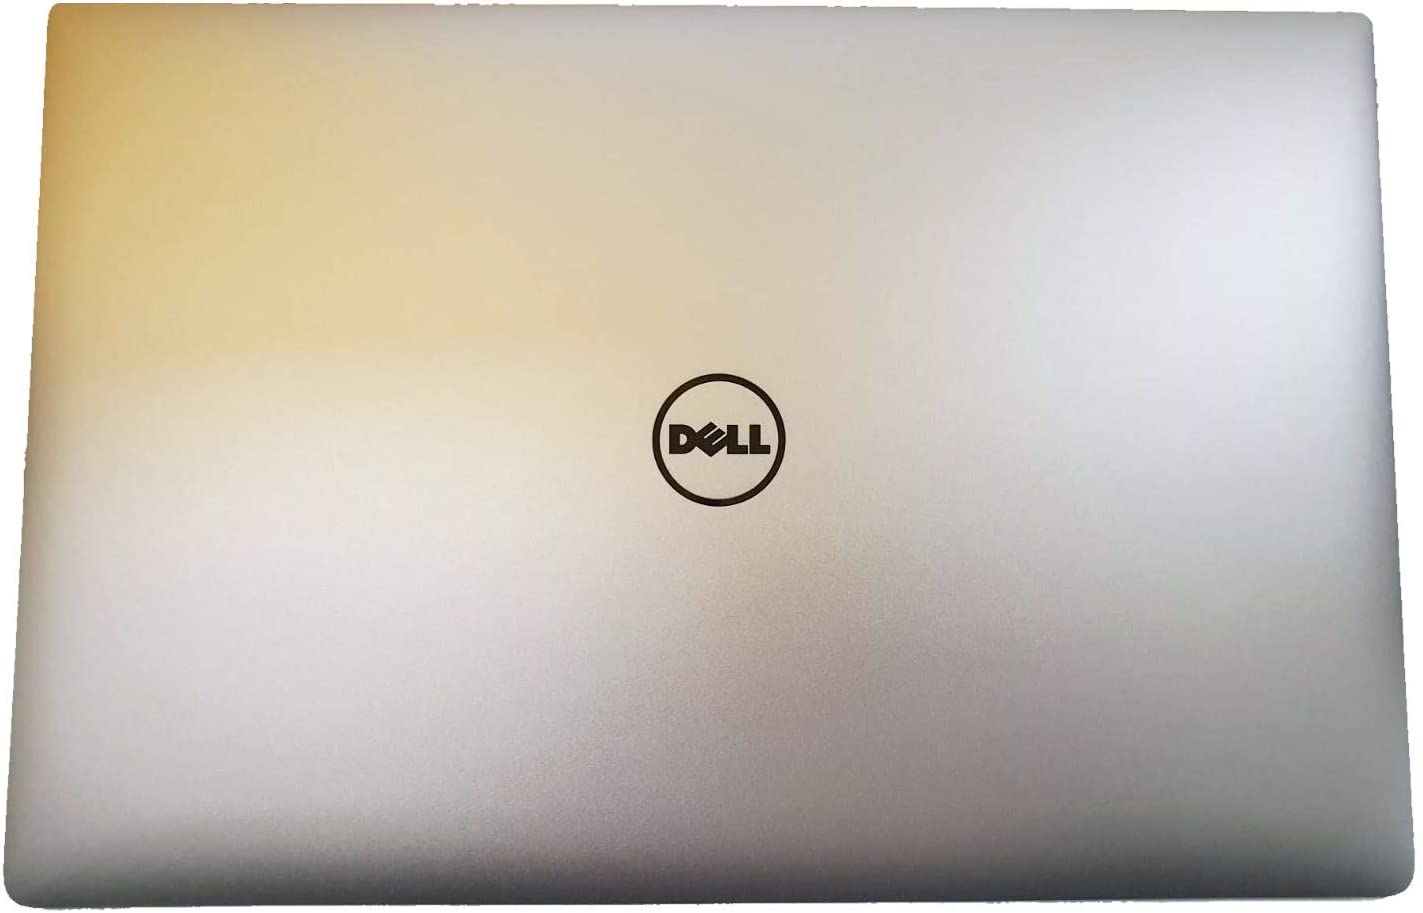 Compatible for Dell XPS 15 9560 9550 5510 M5510 Replacement LCD Back Cover Silver Top Lid Fits for 0J83X5 J83X5